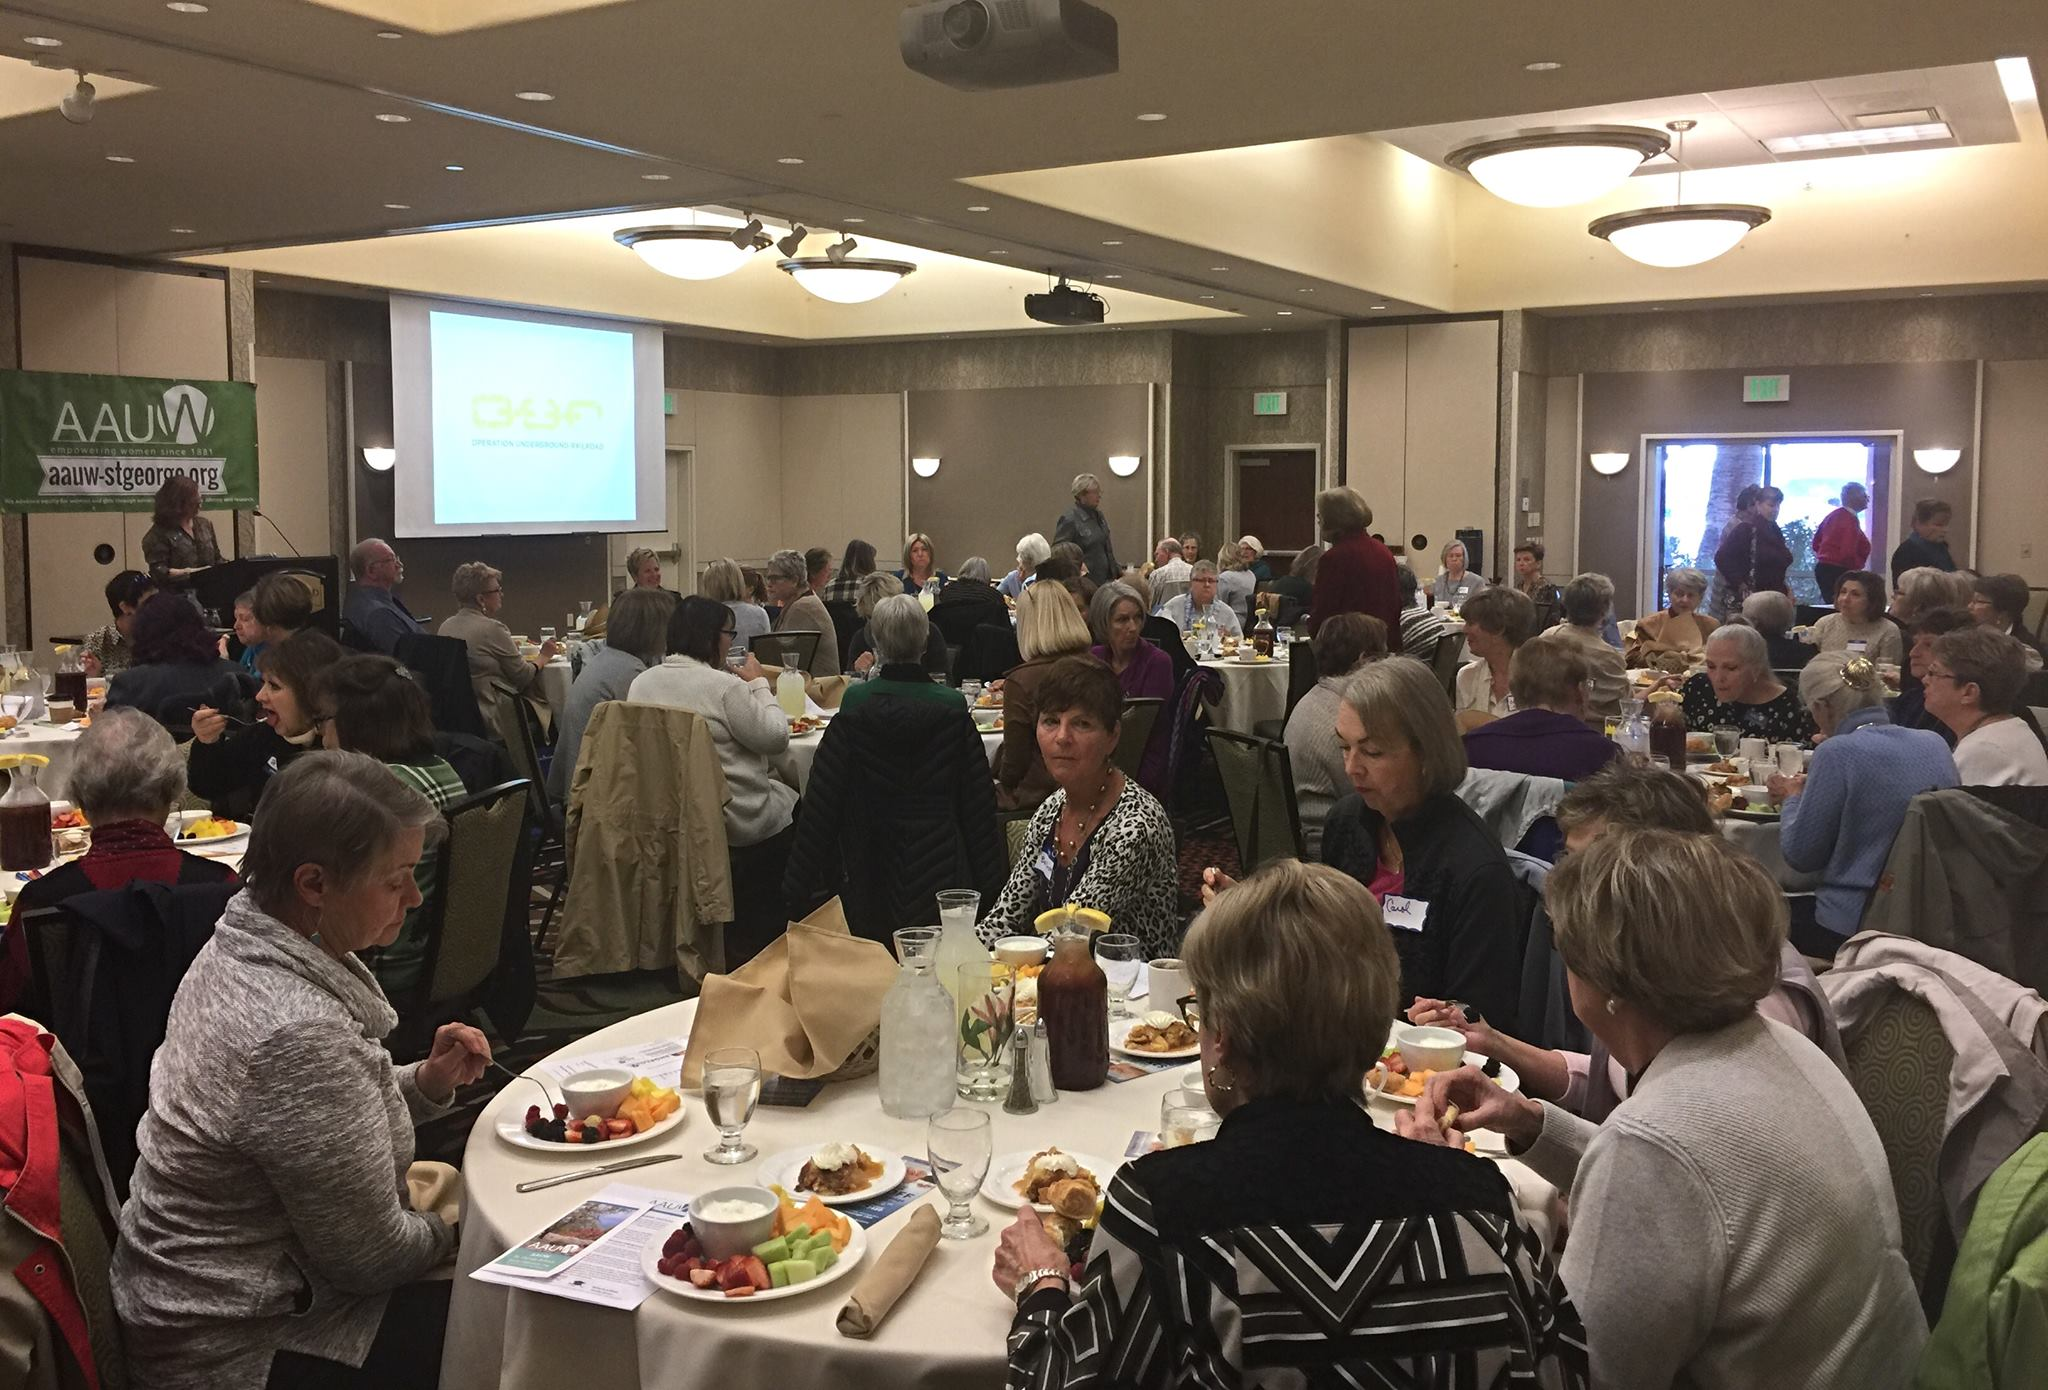 Members of the American Association of University Women gather at a luncheon to discuss some of the issues of human trafficking, St. George, Utah, Jan. 9, 2017   Photo by Kimberly Scott, St. George News